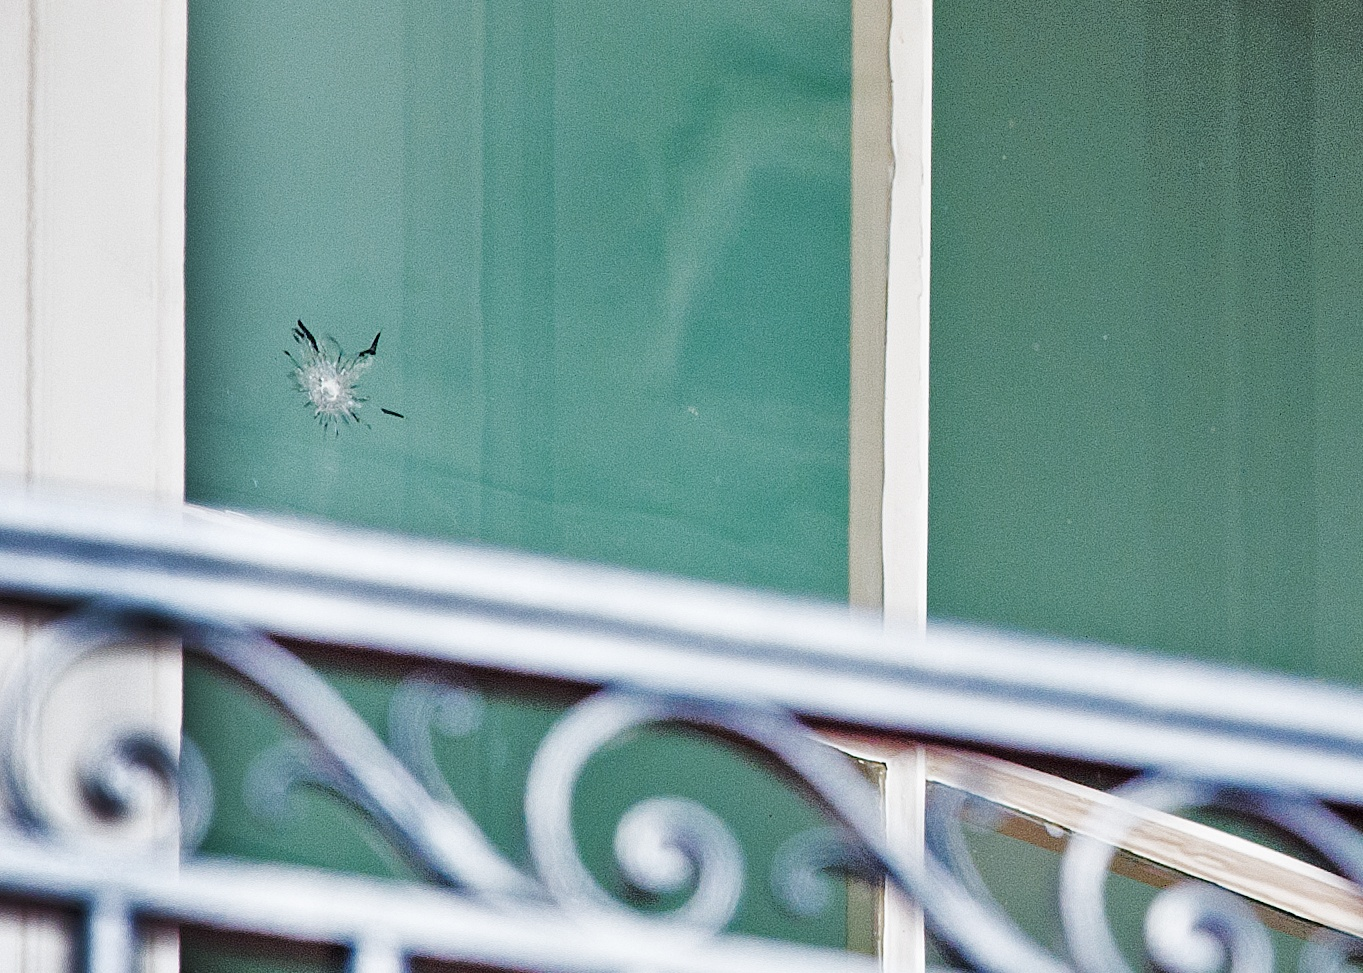 The bullet hole in the window at the White House